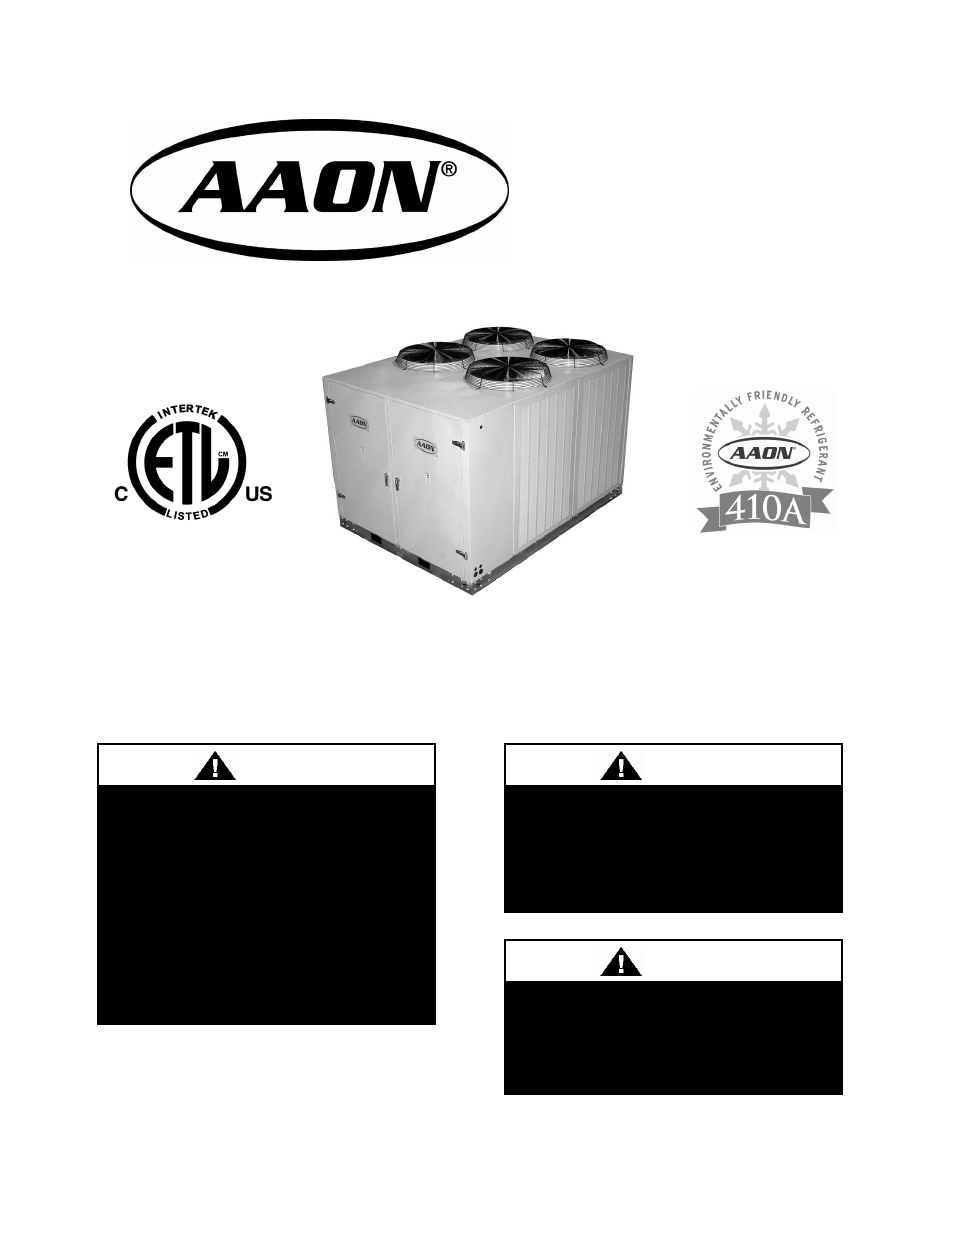 medium resolution of aaon cc 063 user manual 52 pages also for cc 055 cc 045 cc rh manualsdir com aaon 27388 wiring diagrams pdf aaon wiring diagrams rtus